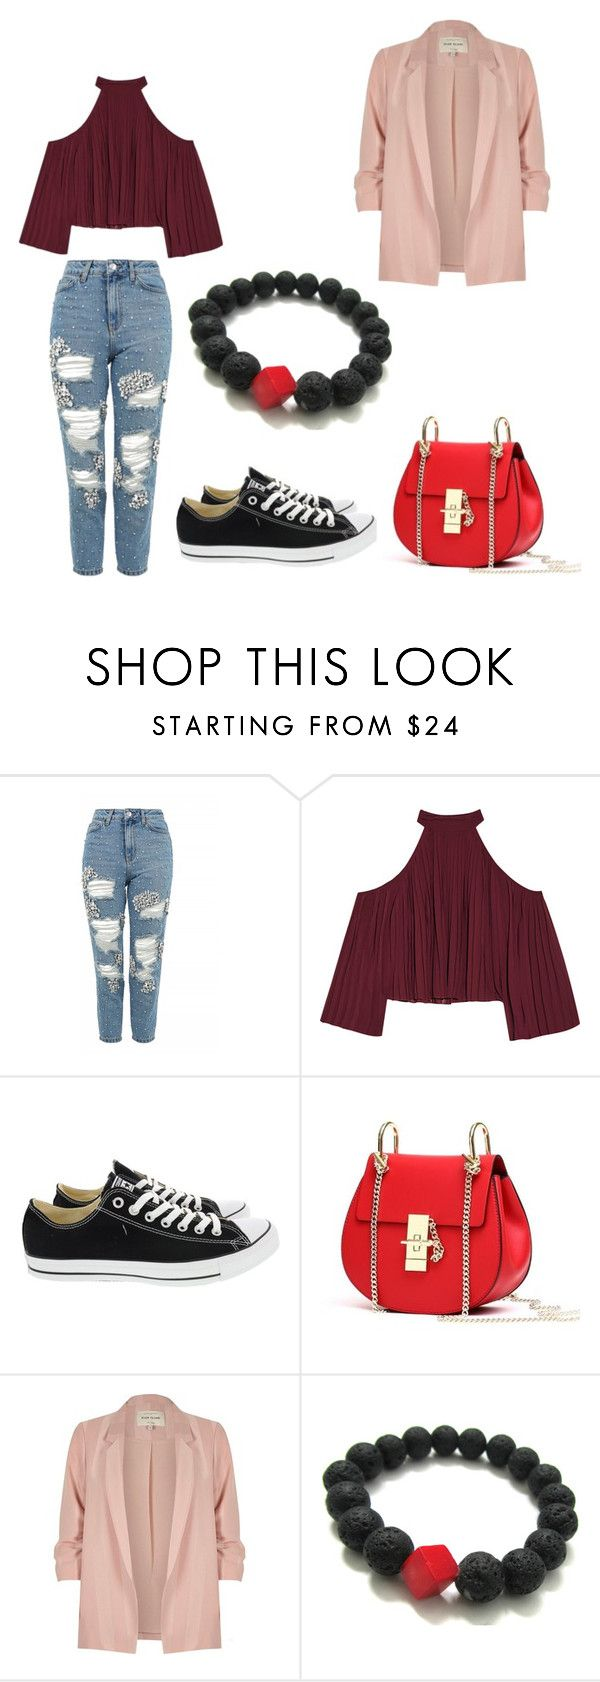 fashion by mary-minge on Polyvore featuring W118 by Walter Baker, River Island, Topshop, Converse and red